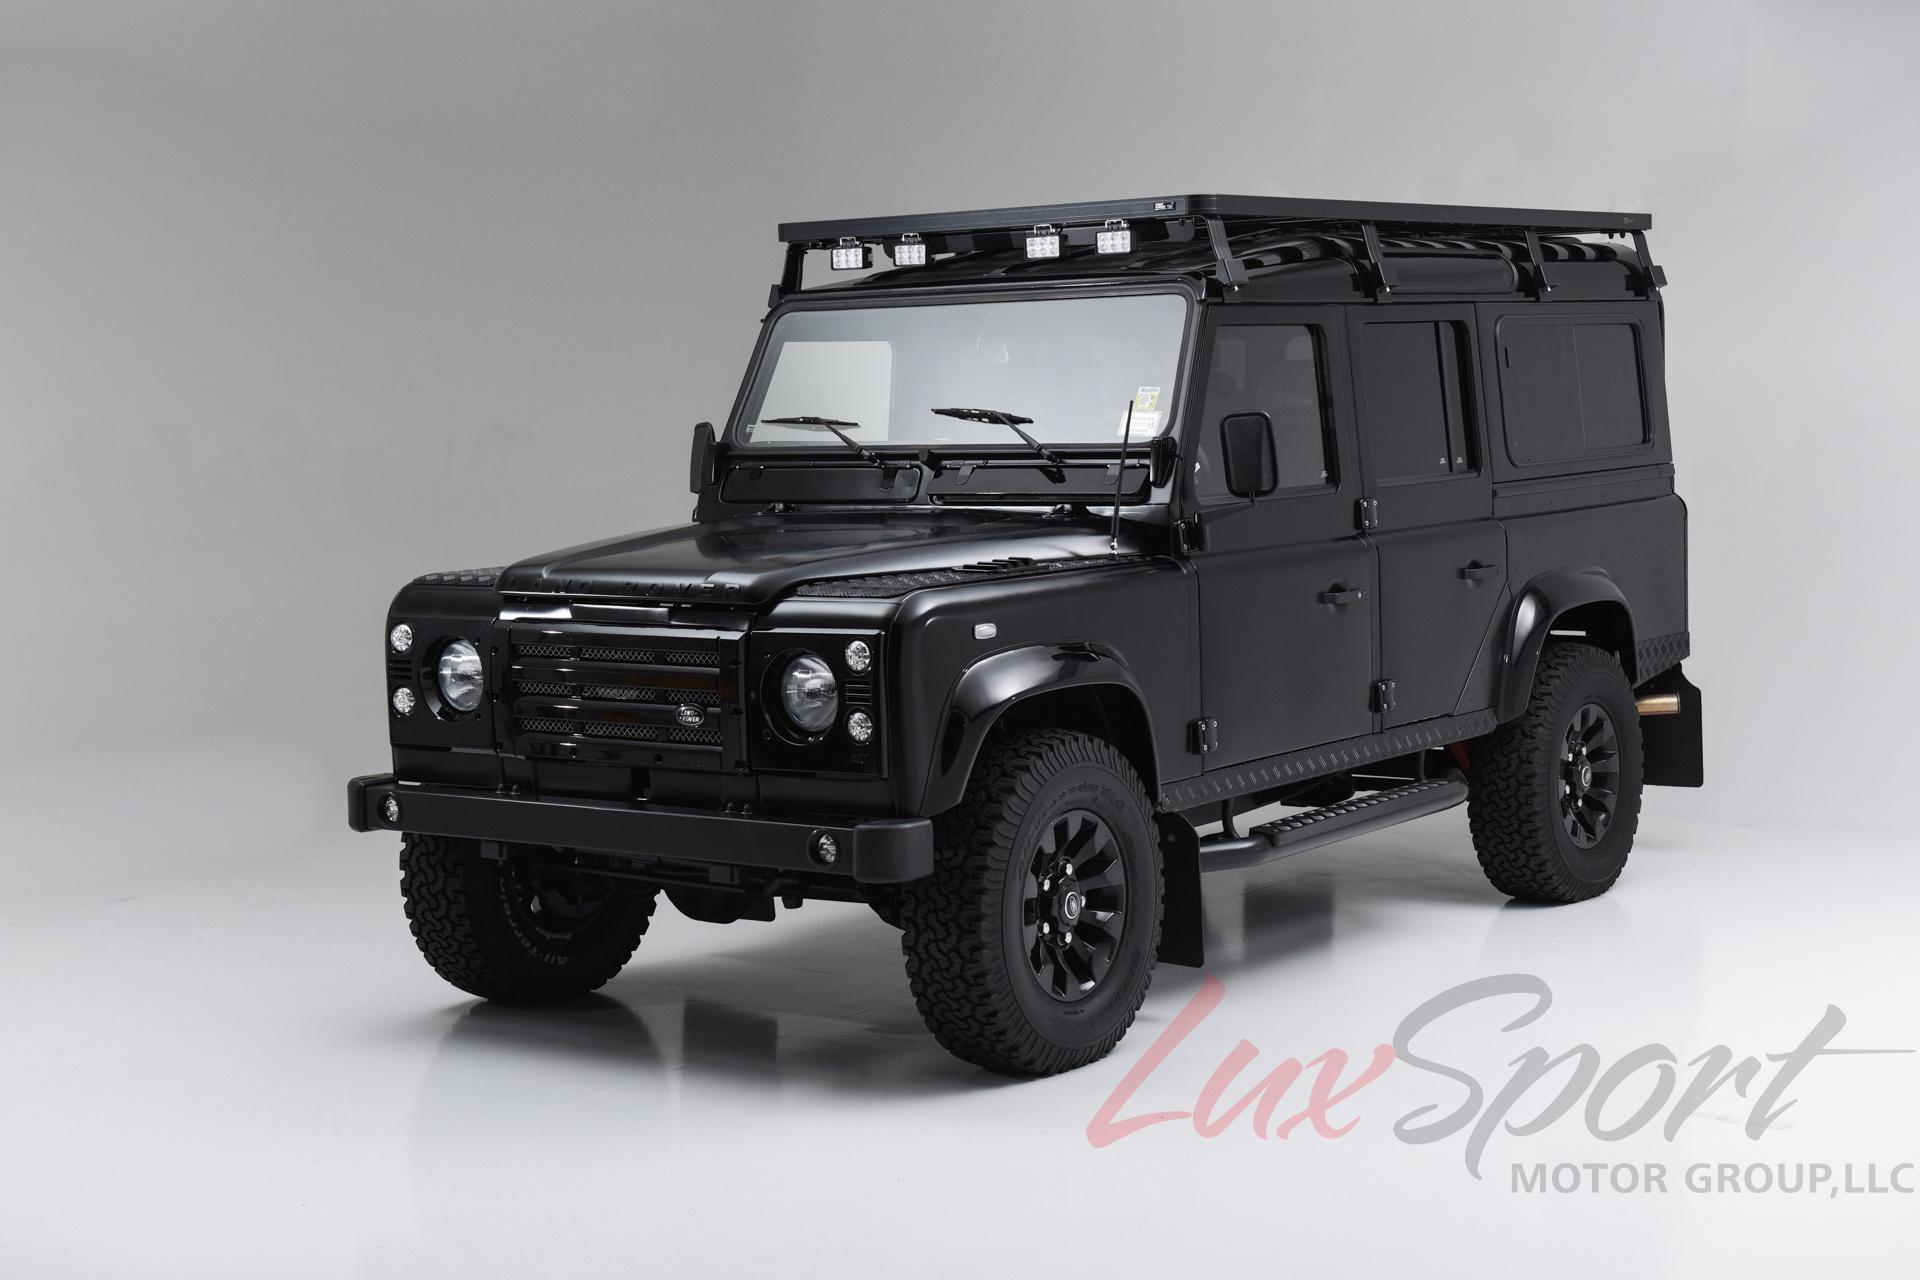 1988 Land Rover Defender 110 Stock # 2014101 for sale near New Hyde Park, NY | NY Land Rover Dealer